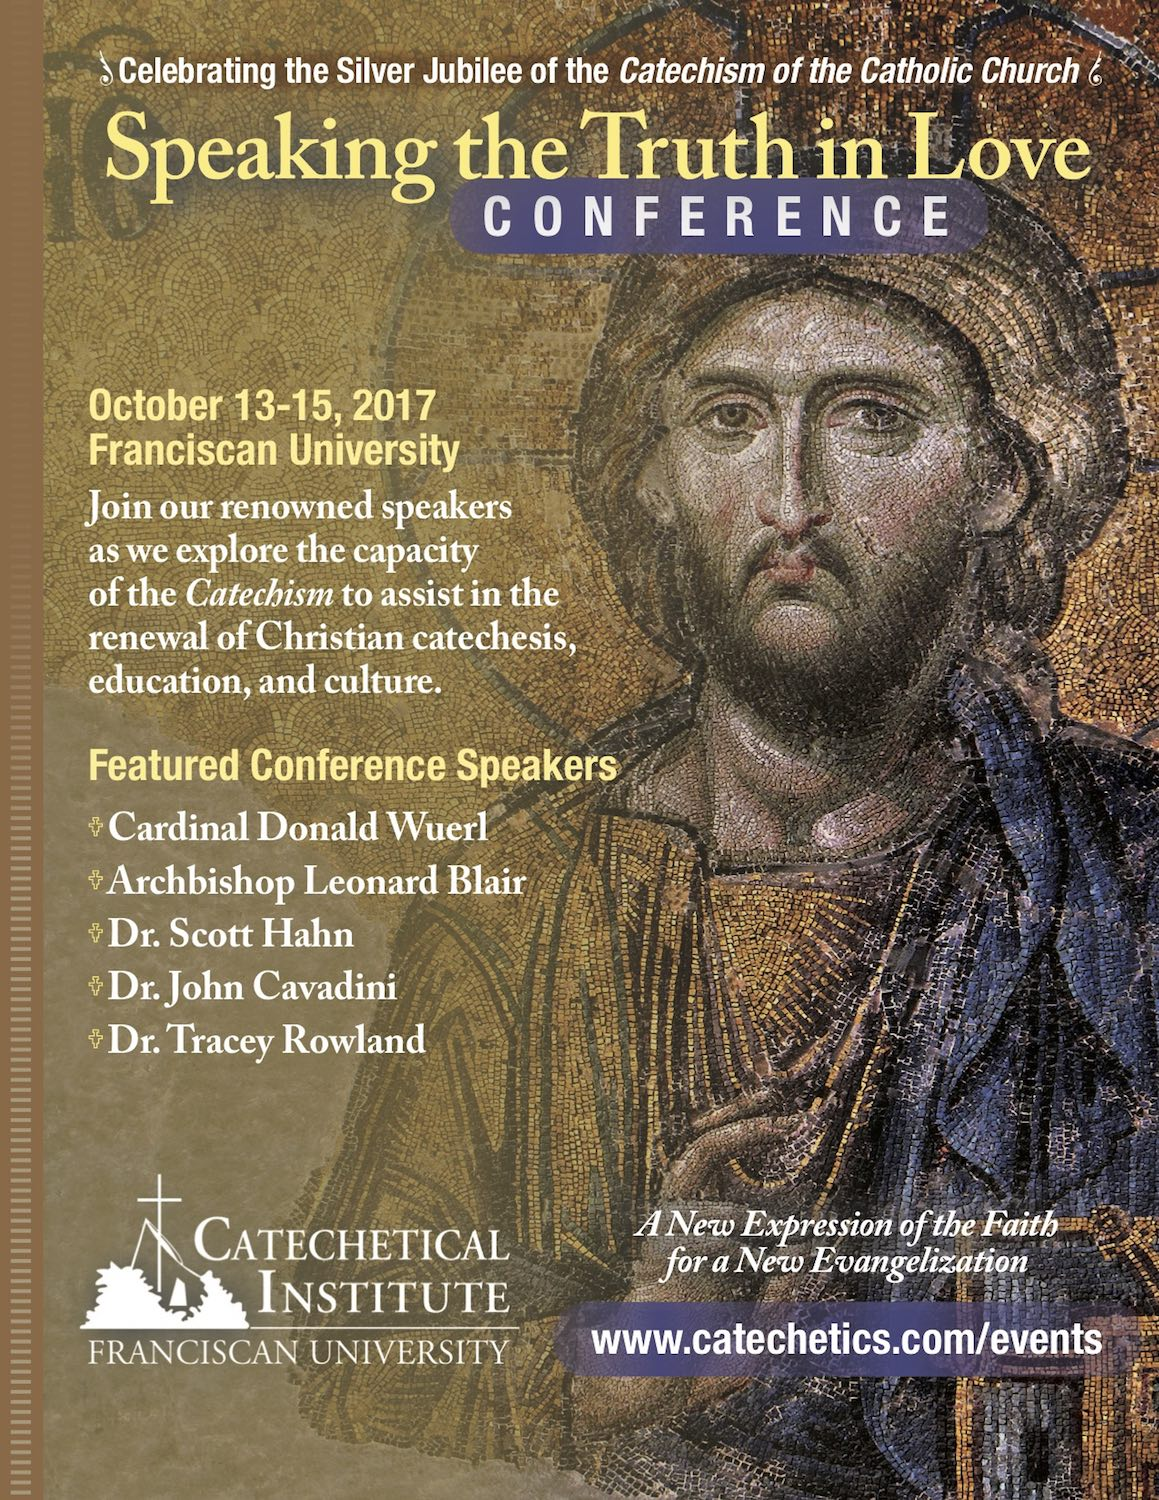 Speaking the Truth in Love Conference Flyer Image